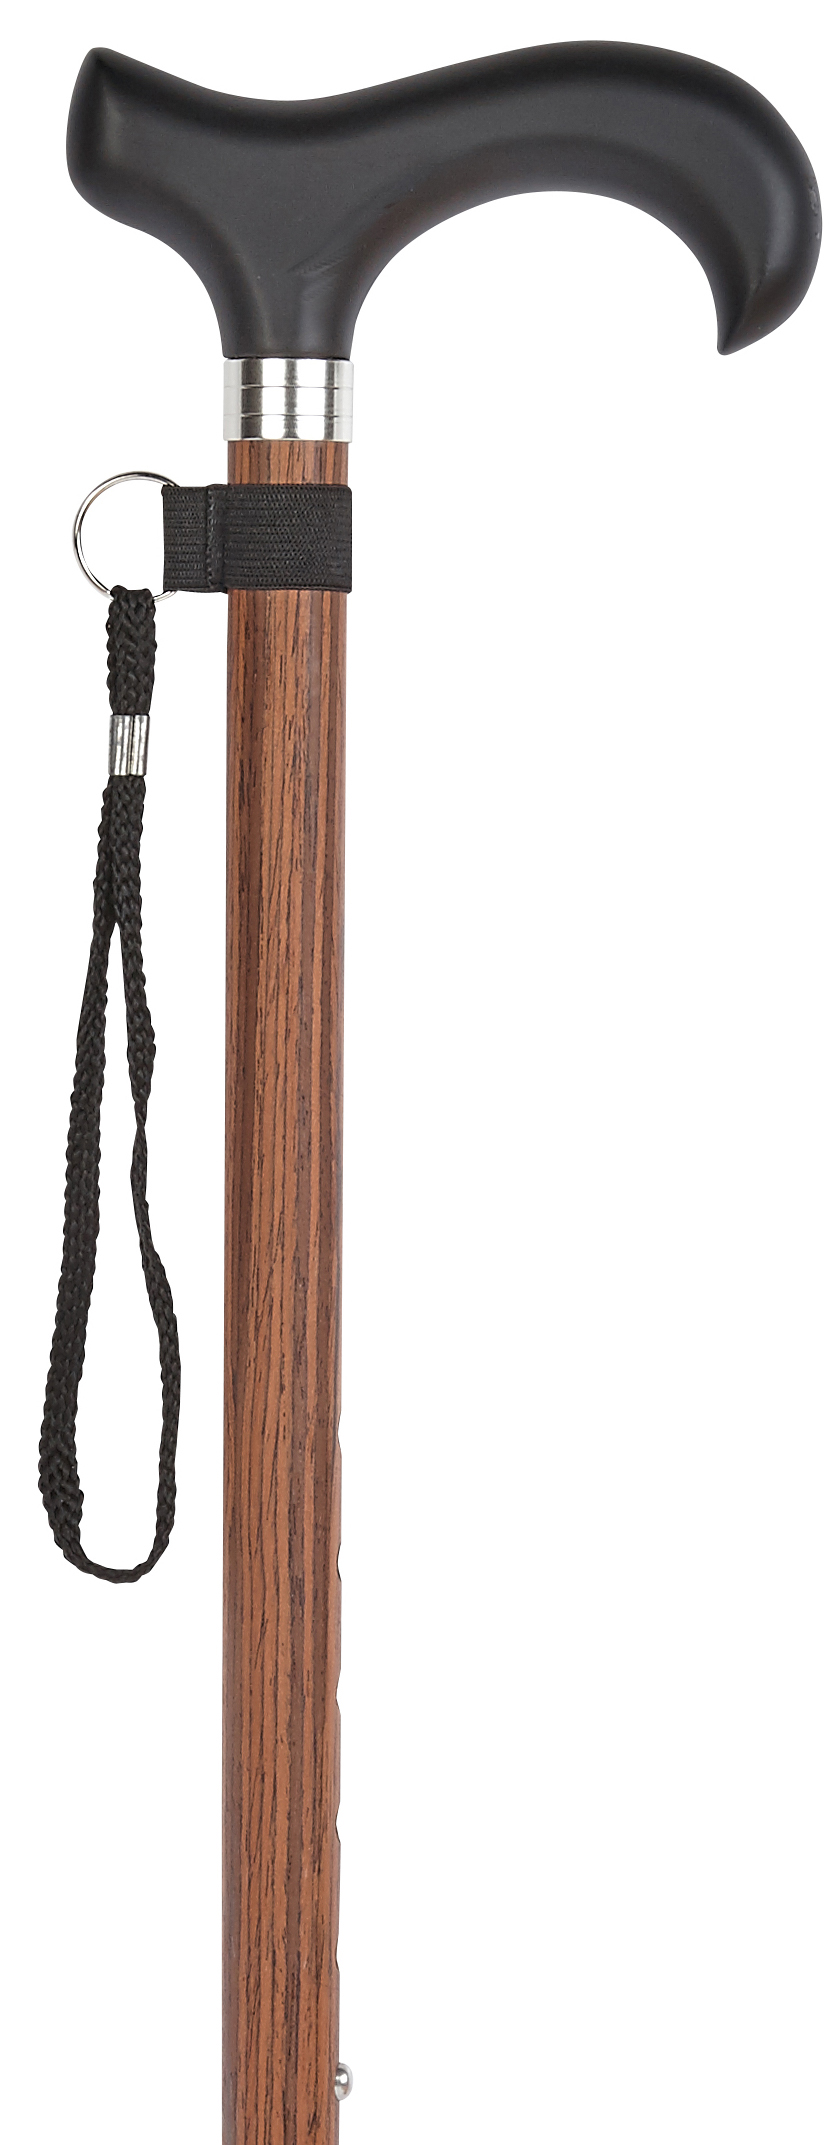 Walking Stick Zebrano Stylish Derby Handle Made Of Sturdy Cast Resin Stable Light Metal In Zebrano Wood Look Height Adjustable Incl Rubber